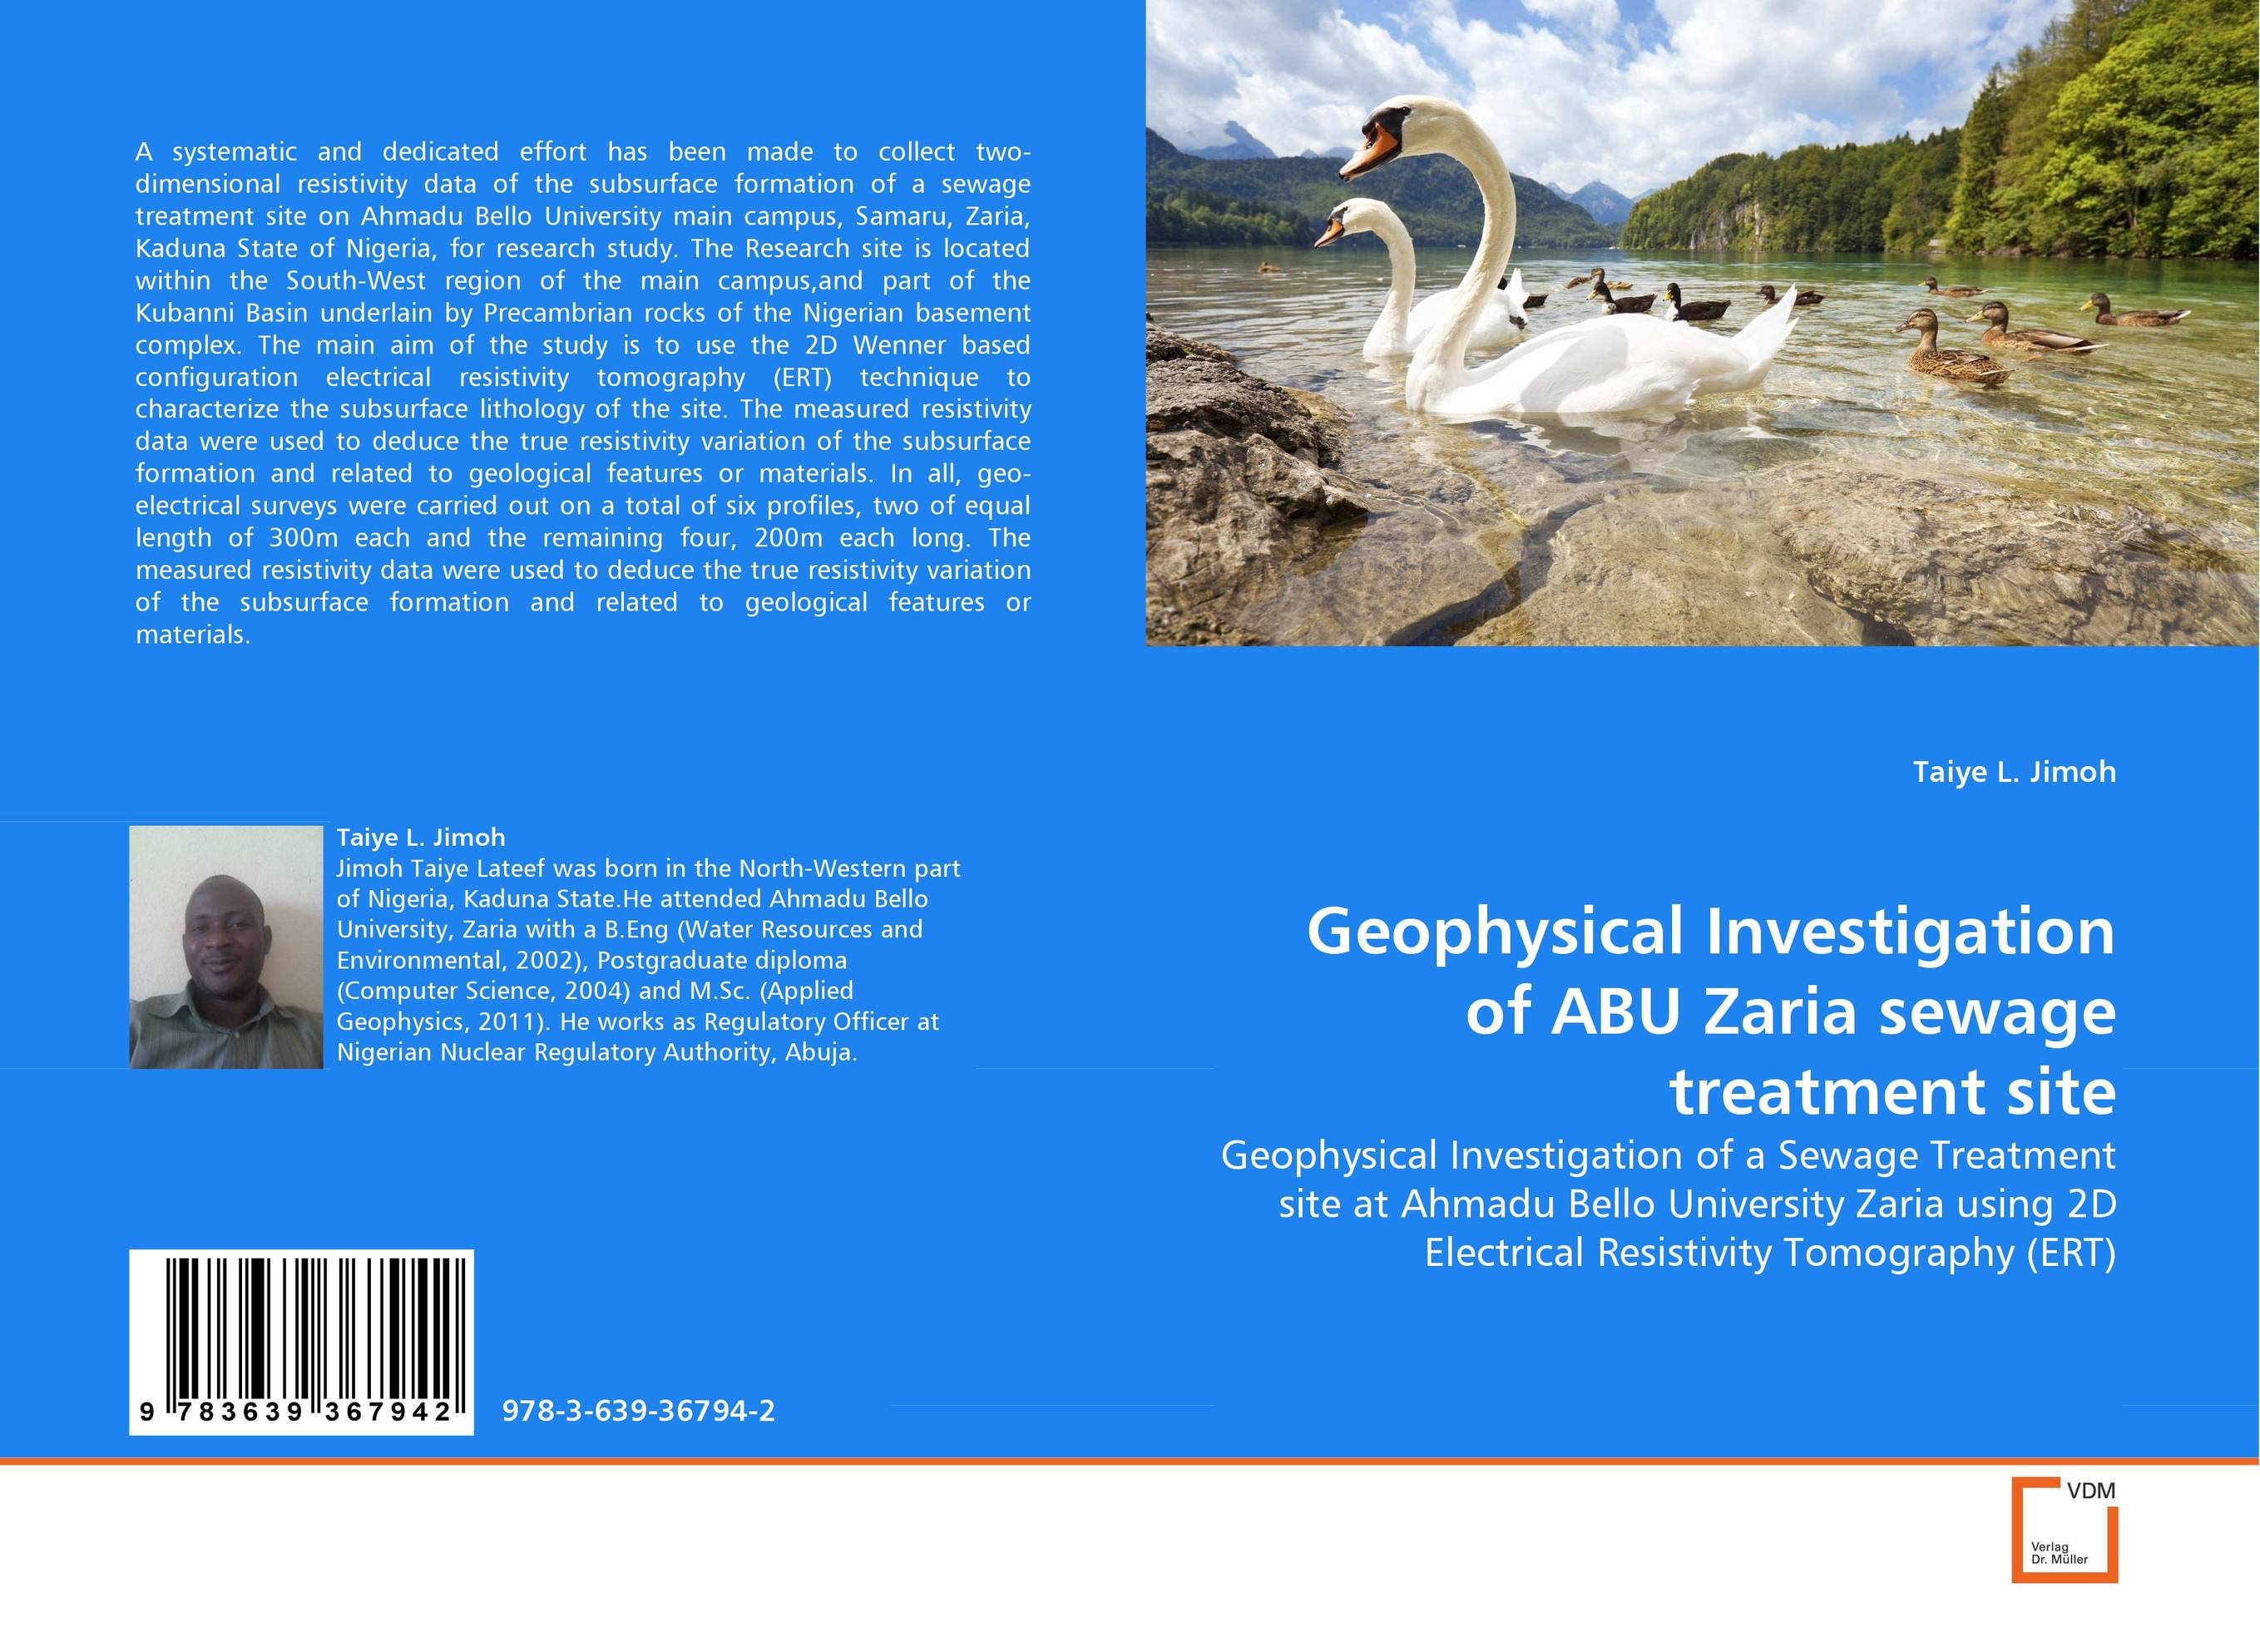 Geophysical Investigation of ABU Zaria sewage treatment site swapna nair and m r anantharaman investigation on the nanomagnetic materials and ferrofluids